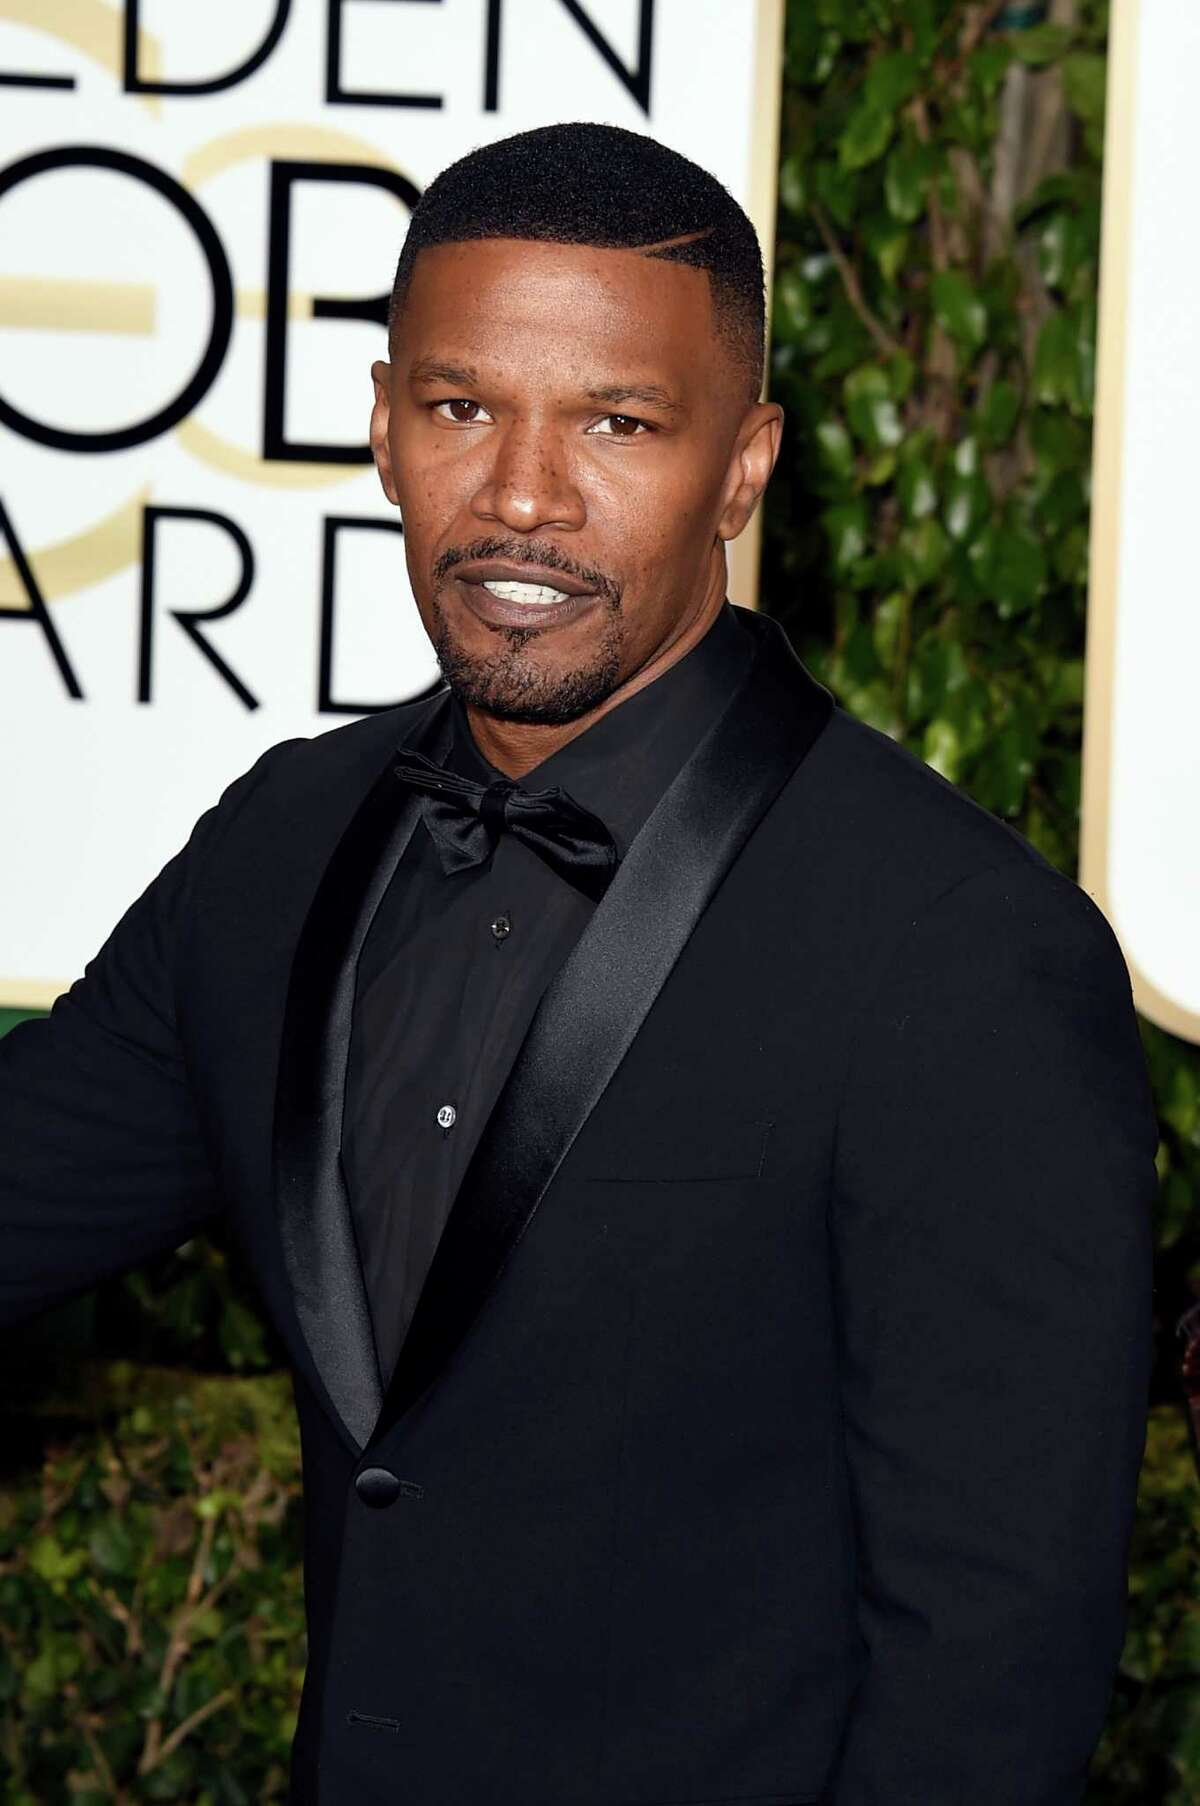 (Jamie) Foxx 3,743,211thmost common Highest density in:Canada Source:Forebears.io